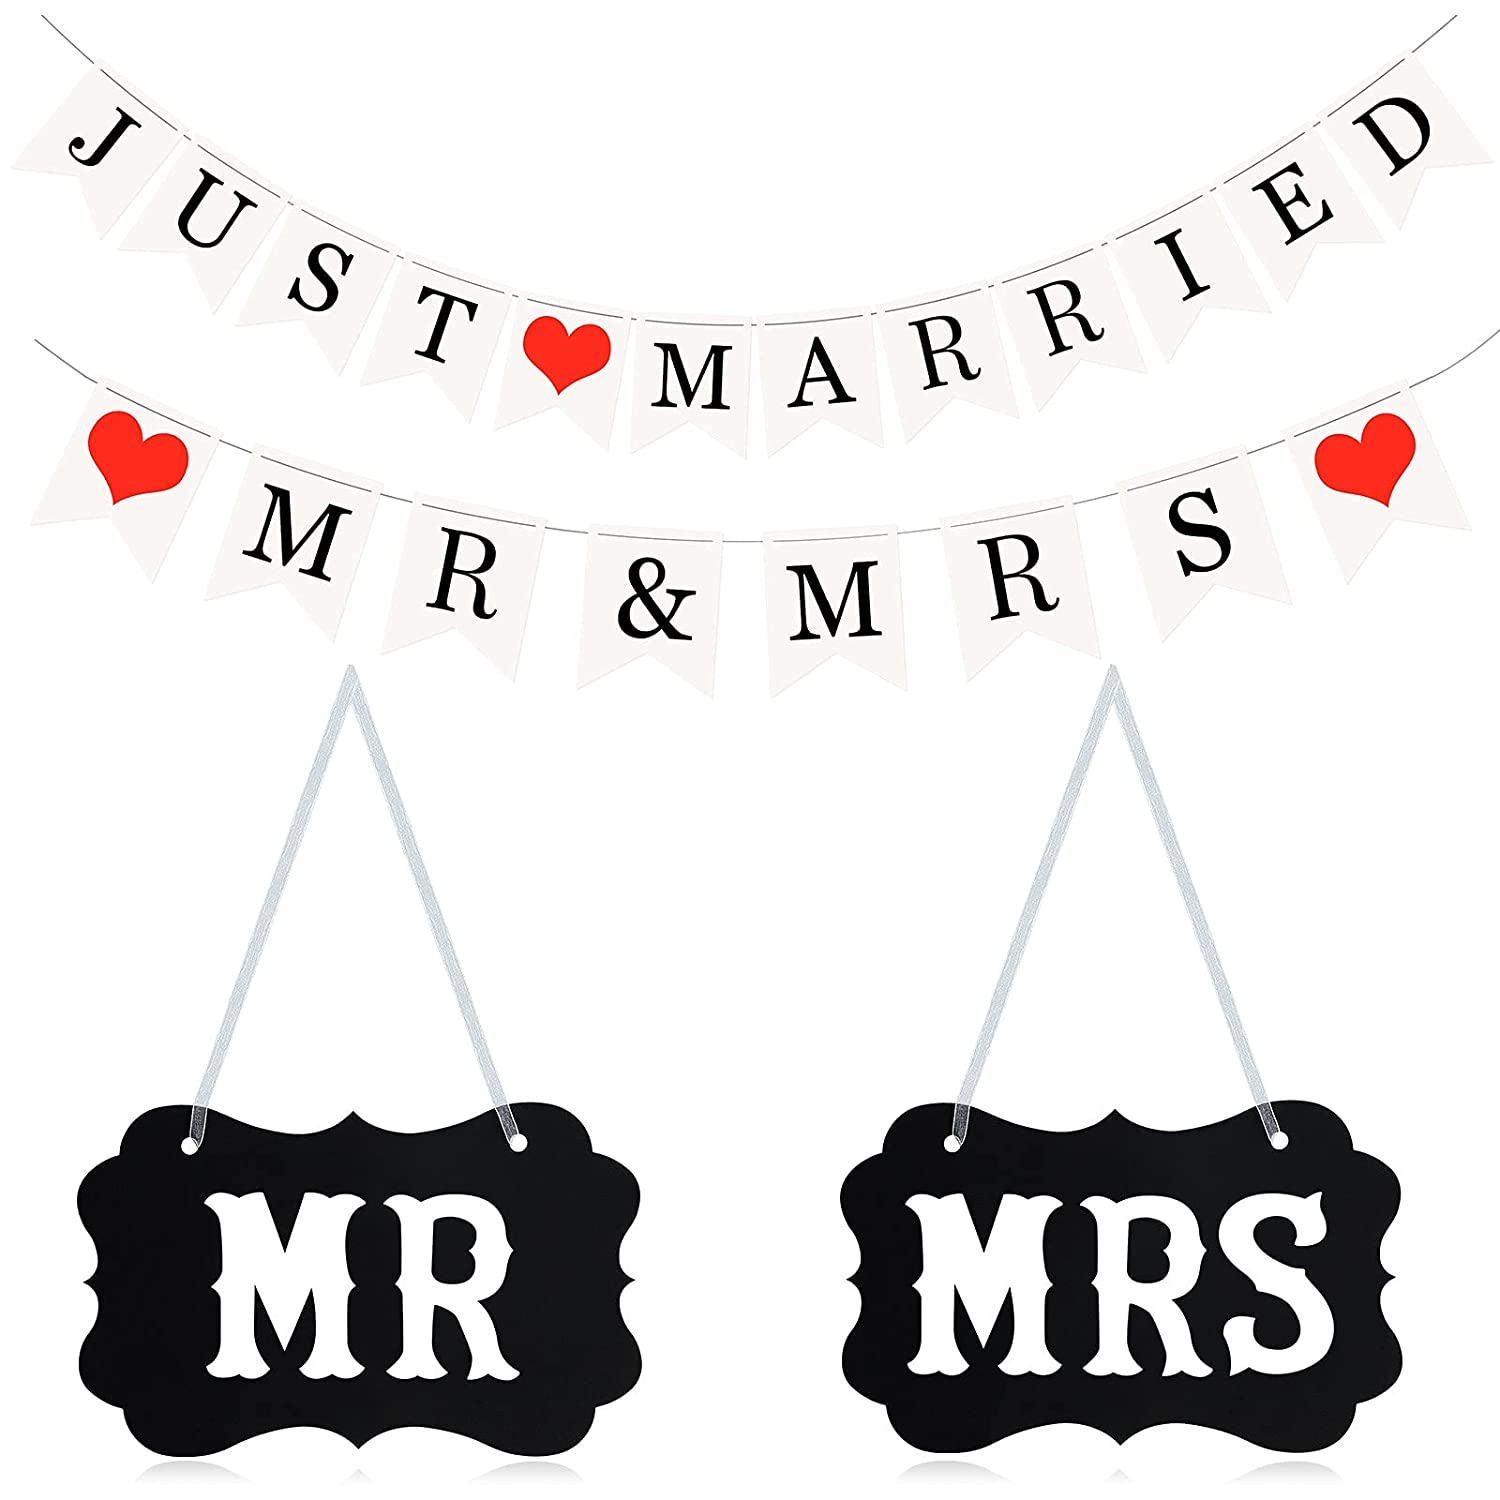 4 Pieces Wedding Bunting Banner, Mr Mrs Chair Bunting Banner Just Married Banner Mr and Mrs Banner Wedding Banner Bunting Photo Booth Props Garland for Bridal Shower Wedding and Engagement Party